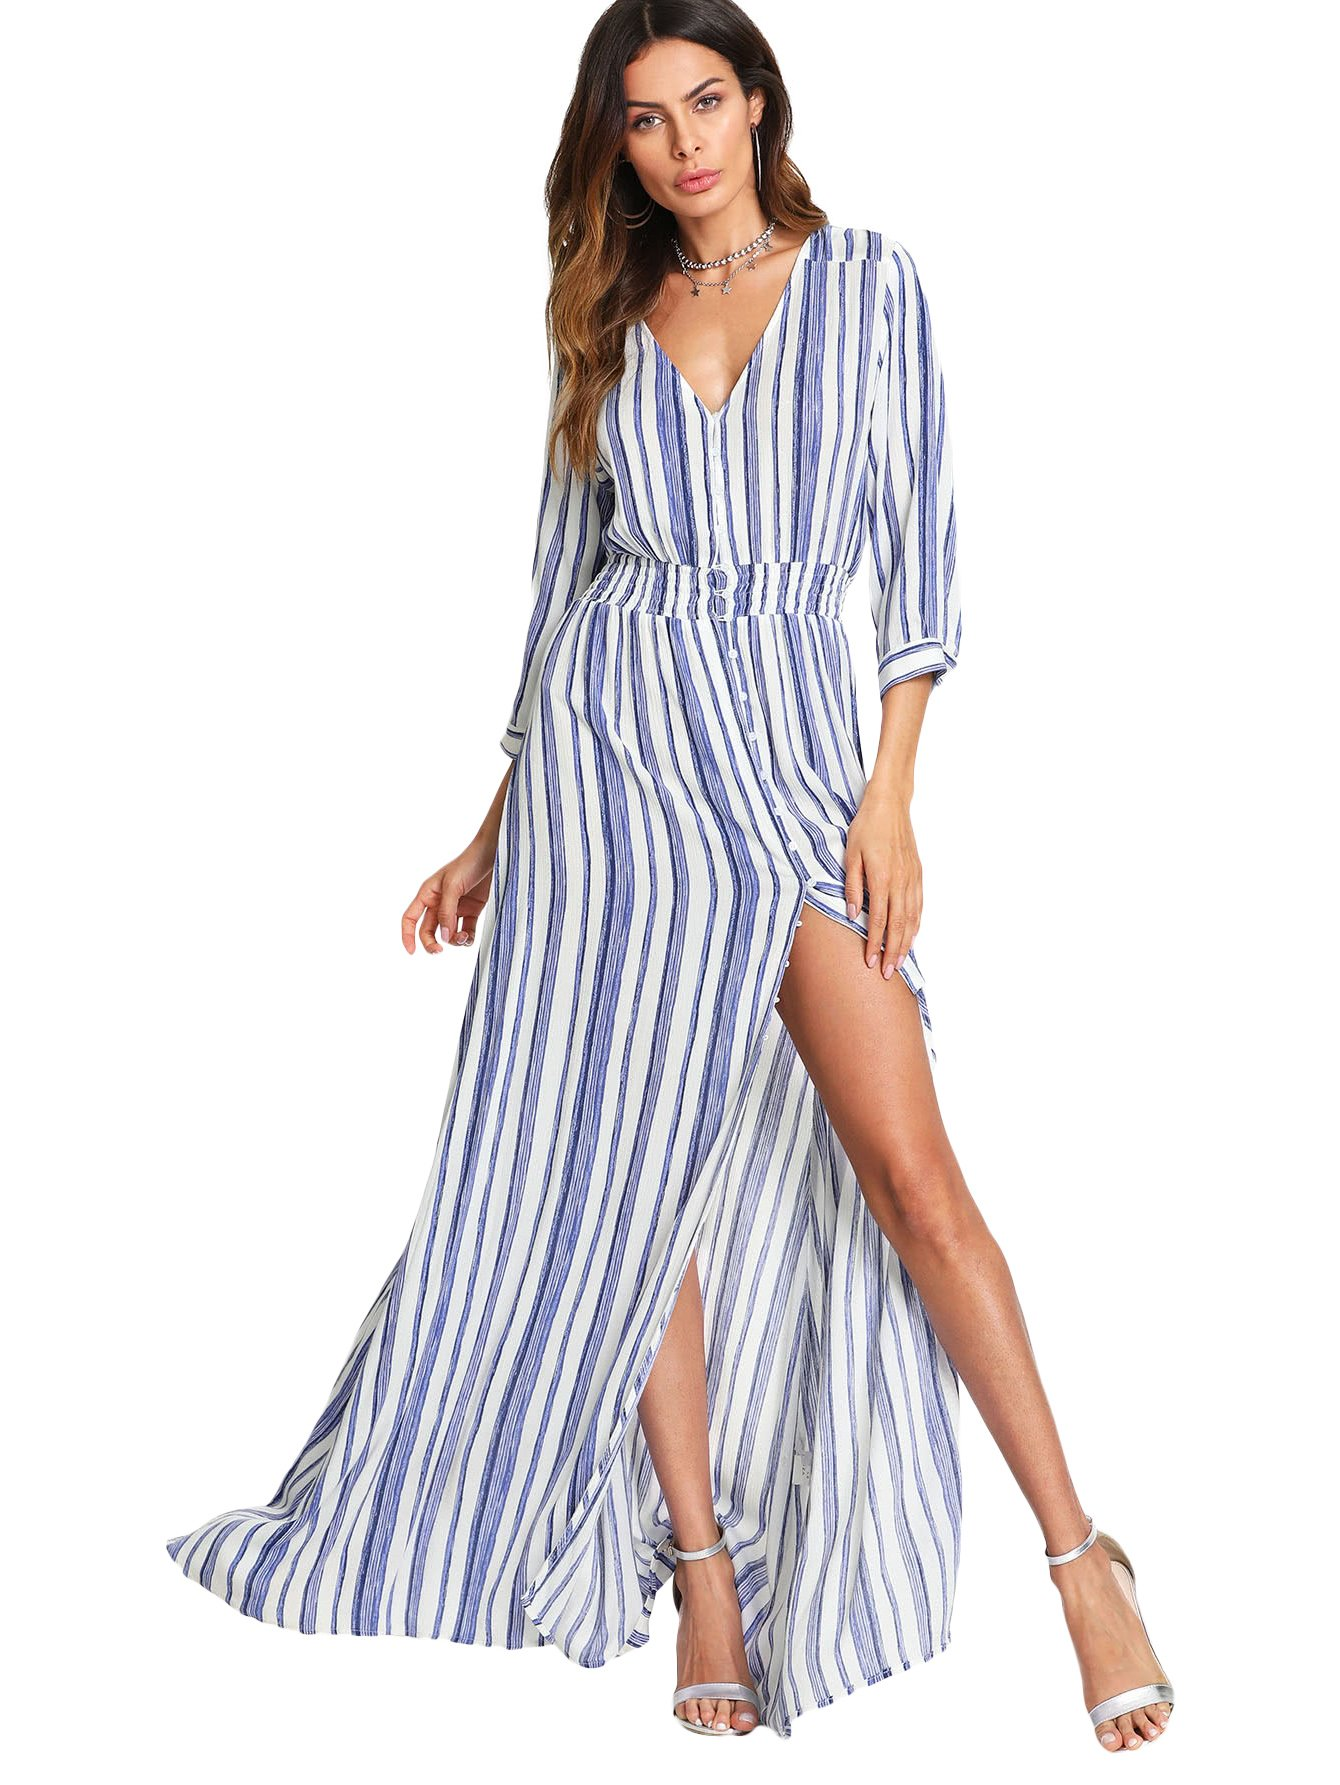 Milumia Stripe Dress, Women Smocked Waist 3 4 Sleeves Button up Summer Chic Blue and White S by Milumia (Image #4)